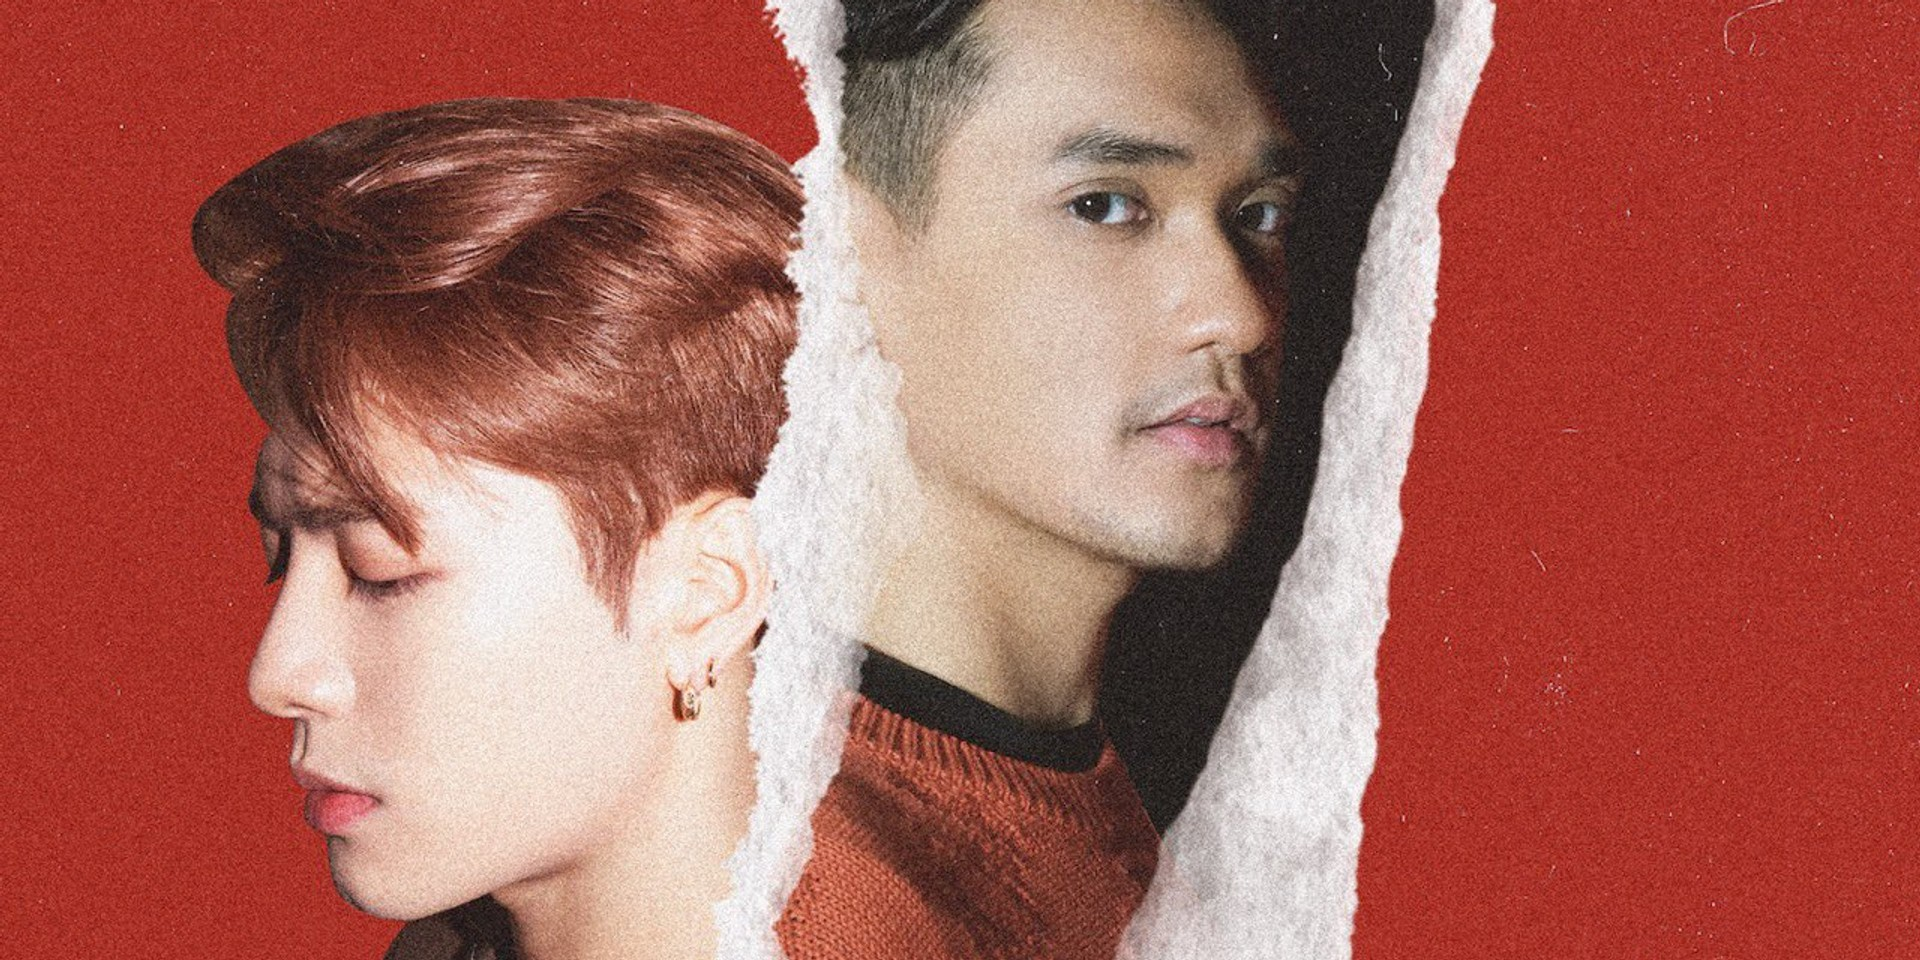 GOT7's Jackson Wang teams up with Afgan for new single, 'M.I.A' – listen